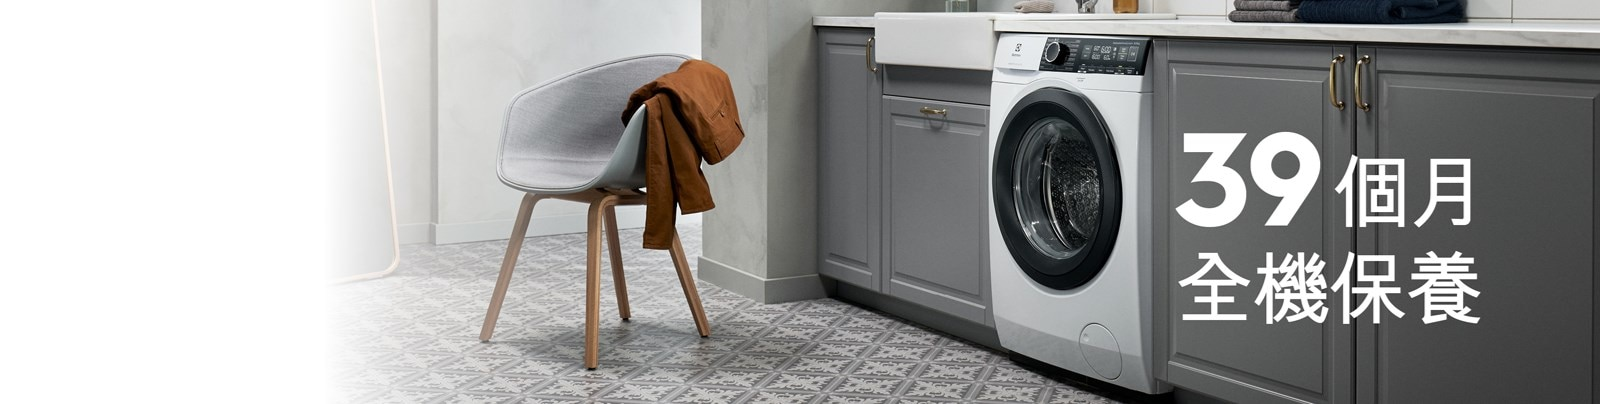 HK-Electrolux-website_laundry-cover_Chi.jpg